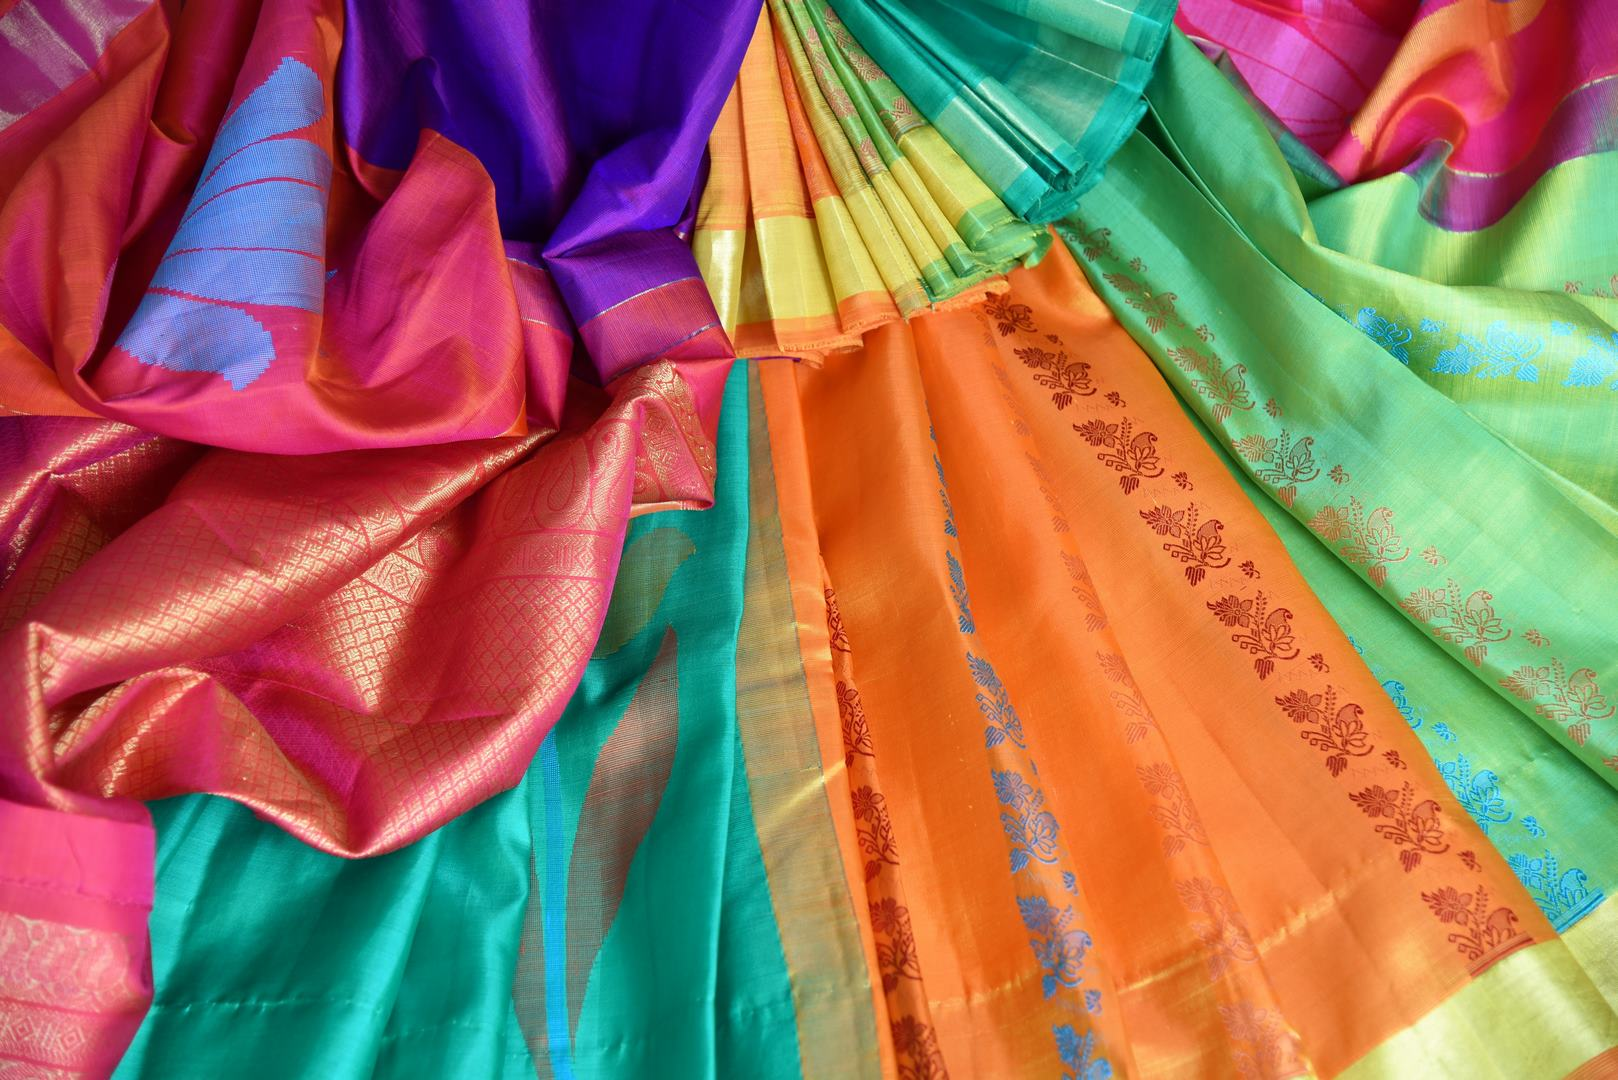 Buy multicolor Kanjeevaram silk saree with red zari pallu online in USA from Pure Elegance online store. Visit our exclusive Indian clothing store in USA and get floored by a range of exquisite Indian Kanjivaram saris, handloom sarees, silk sarees, Indian jewelry and much more to complete your ethnic look.-details